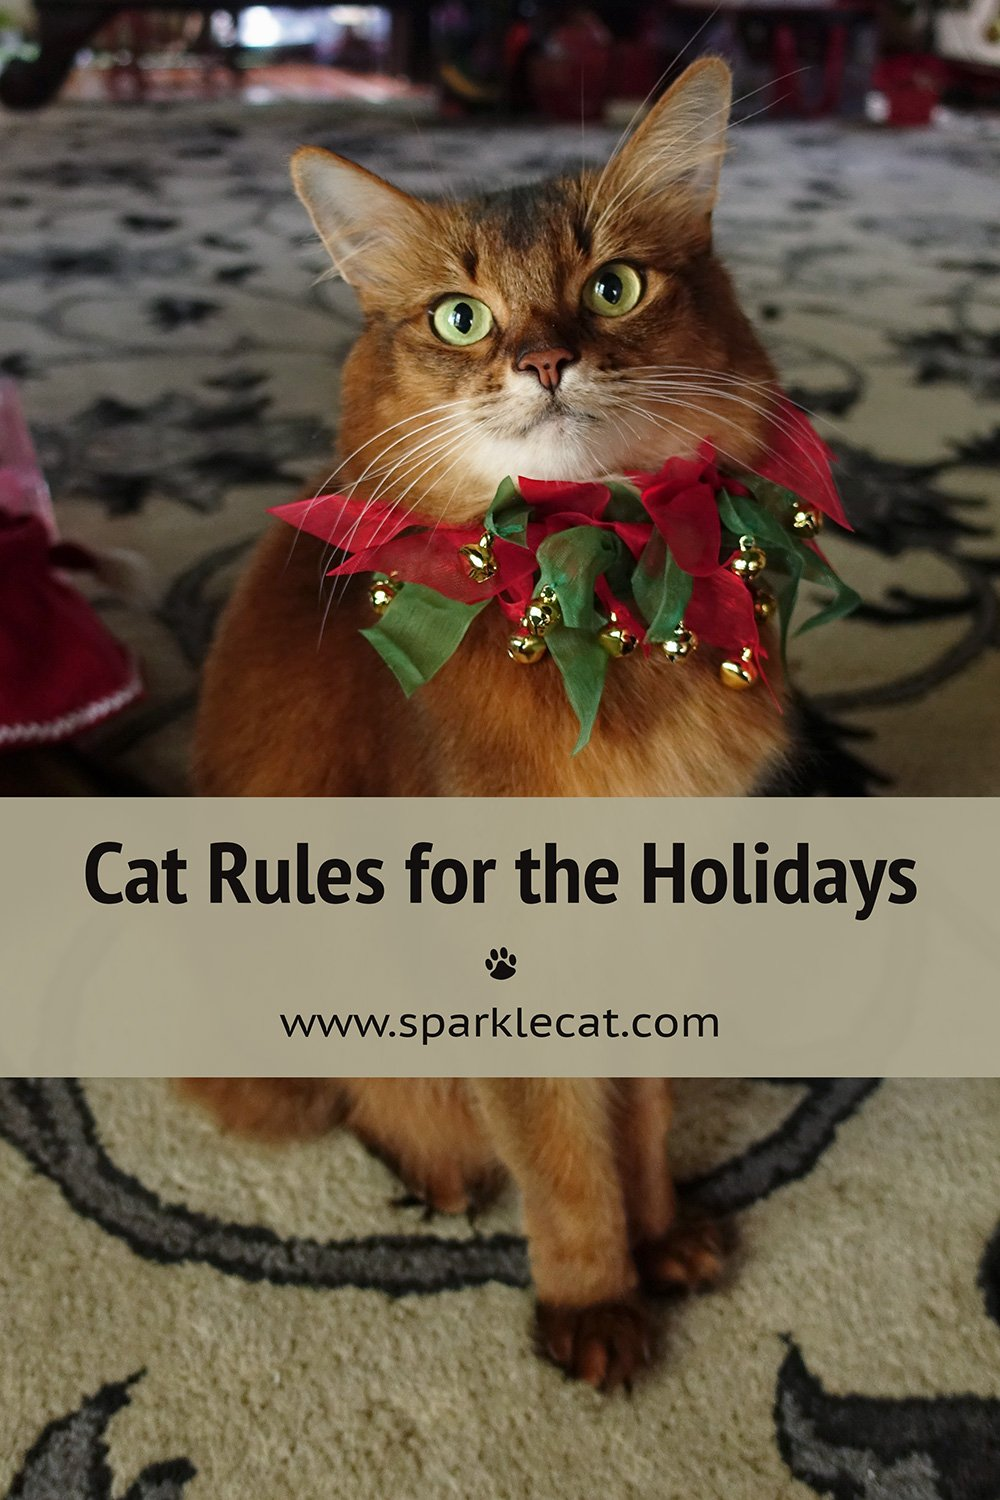 Cat Rules for the Holidays